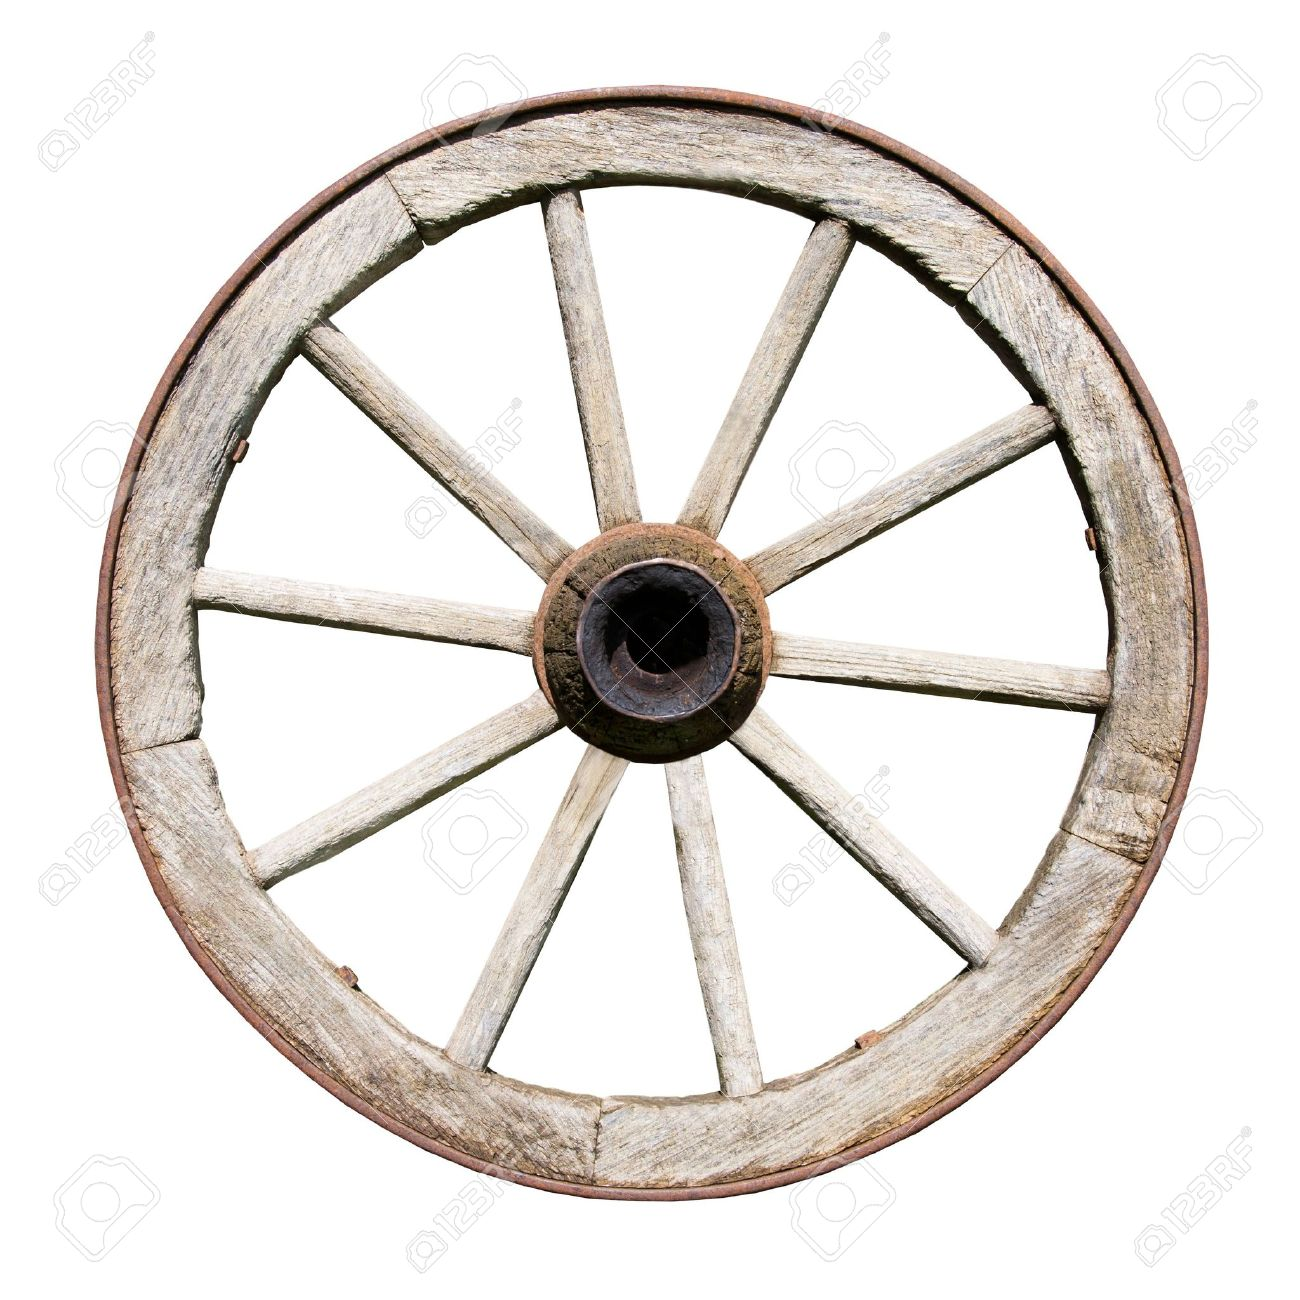 Old traditional wodden wheel isolated on white background stock old traditional wodden wheel isolated on white background stock photo 7617240 publicscrutiny Choice Image